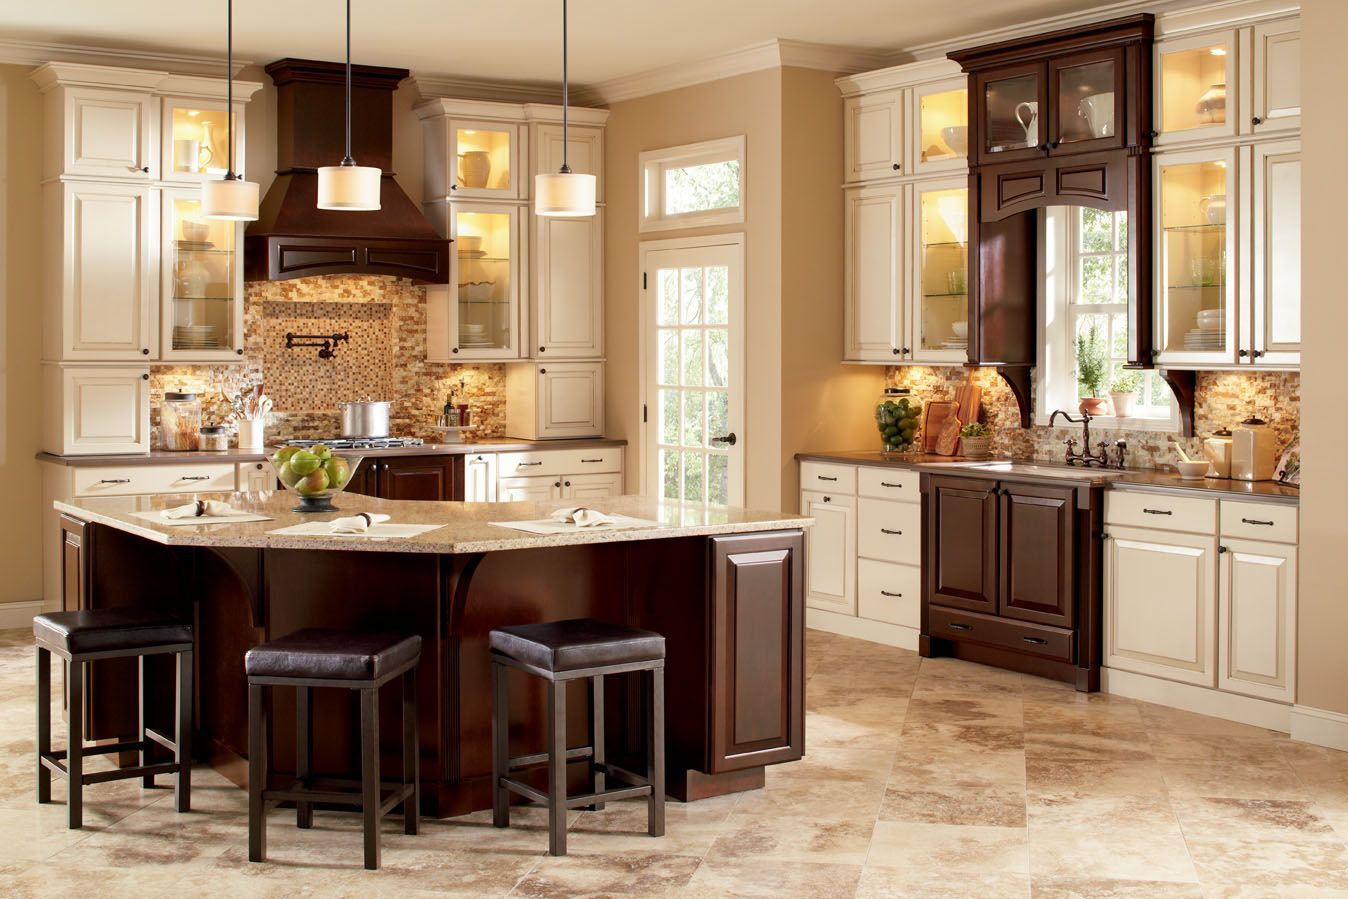 The White Cabinets Are What Iu0027m Getting!! American Woodmark   Newport With  Hazelnut Glaze